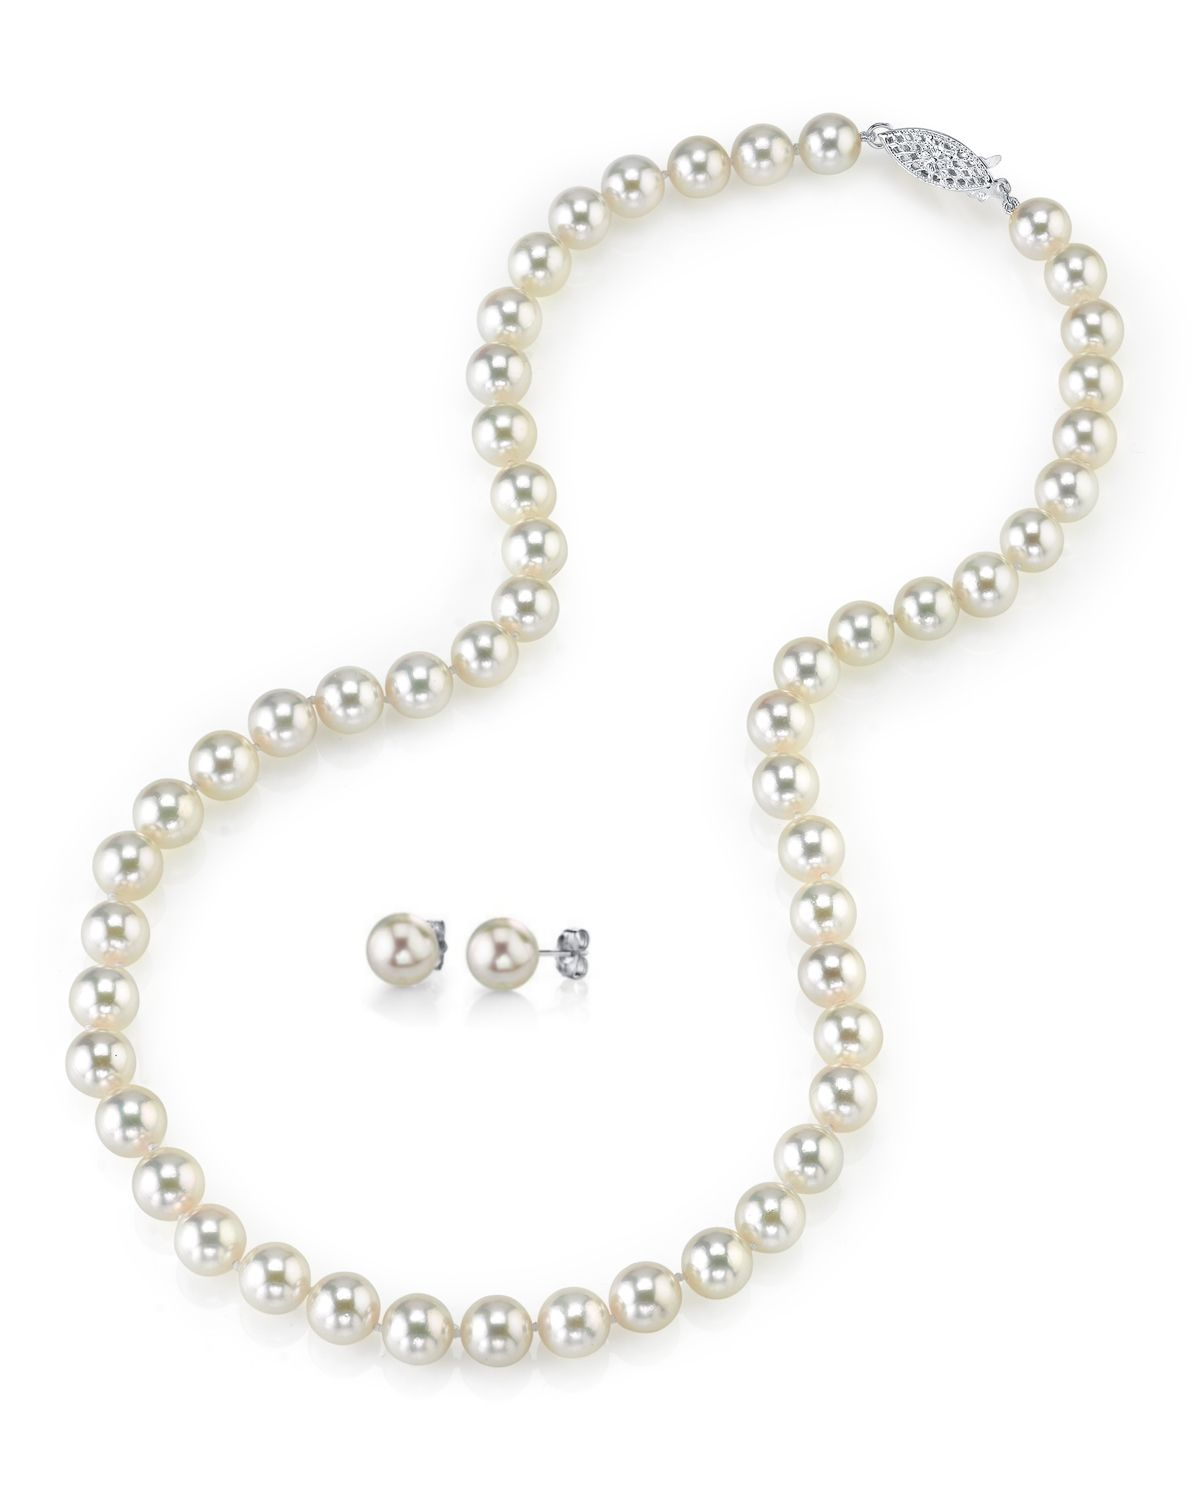 8.5-9.0mm Japanese White Akoya Pearl Necklace & Earrings